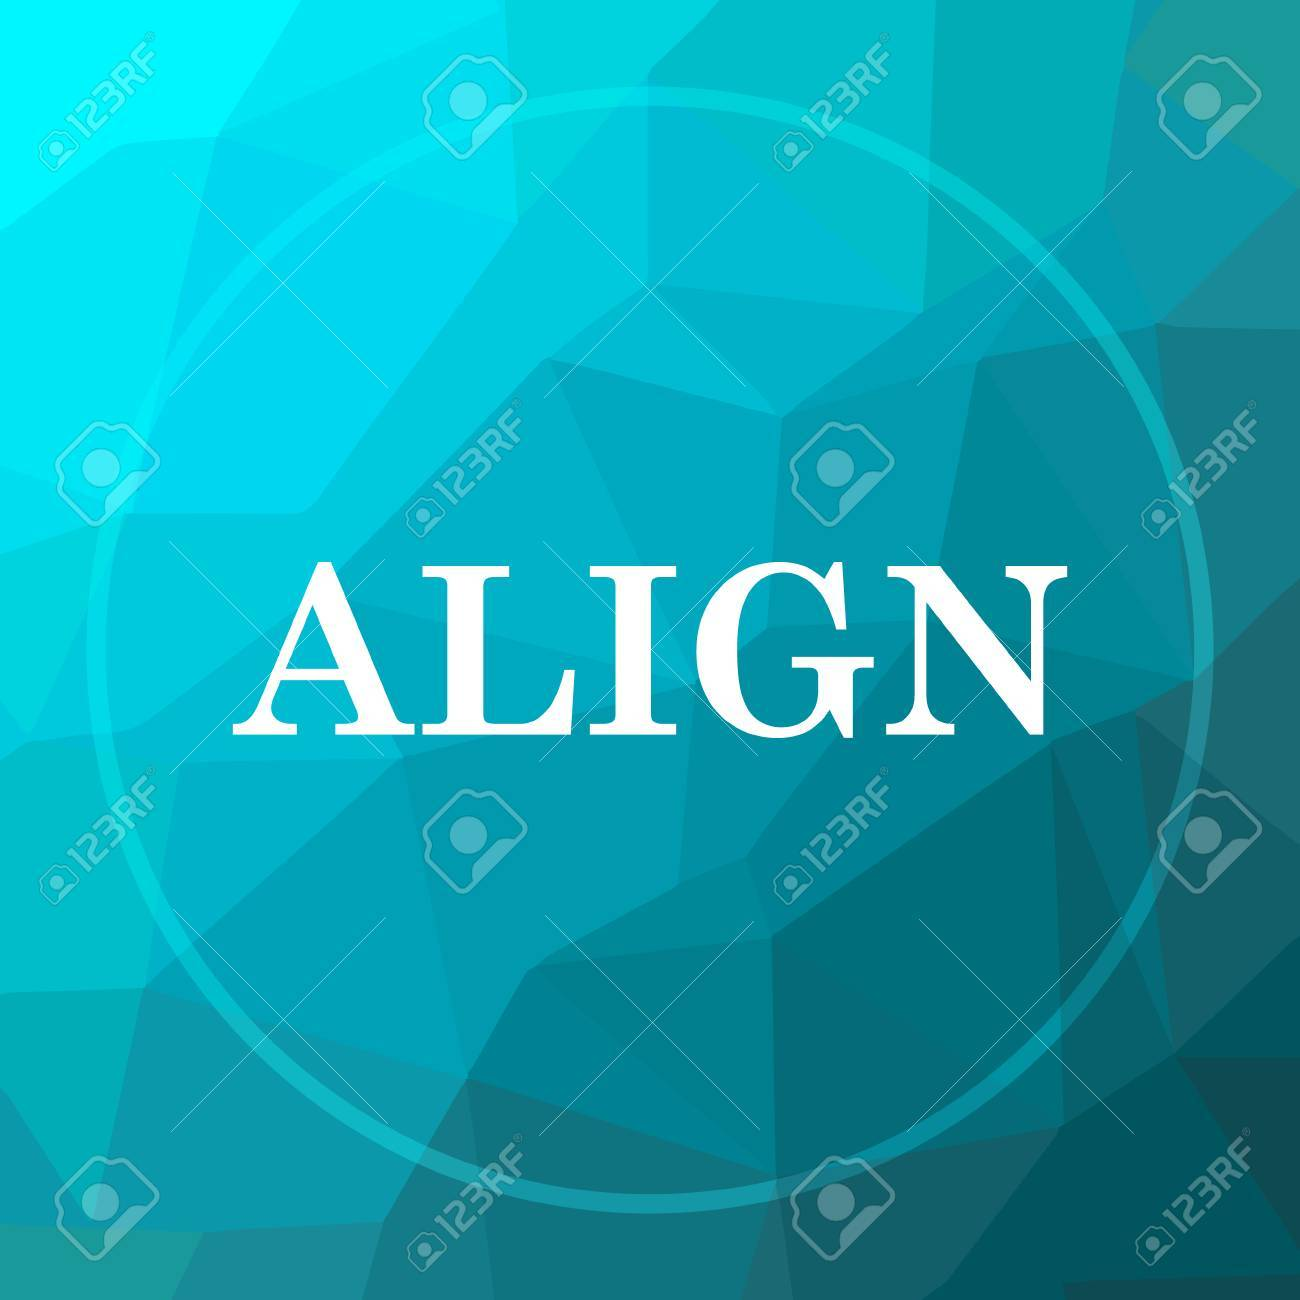 Background image align - Align Icon Align Website Button On Blue Low Poly Background Stock Photo 69299138